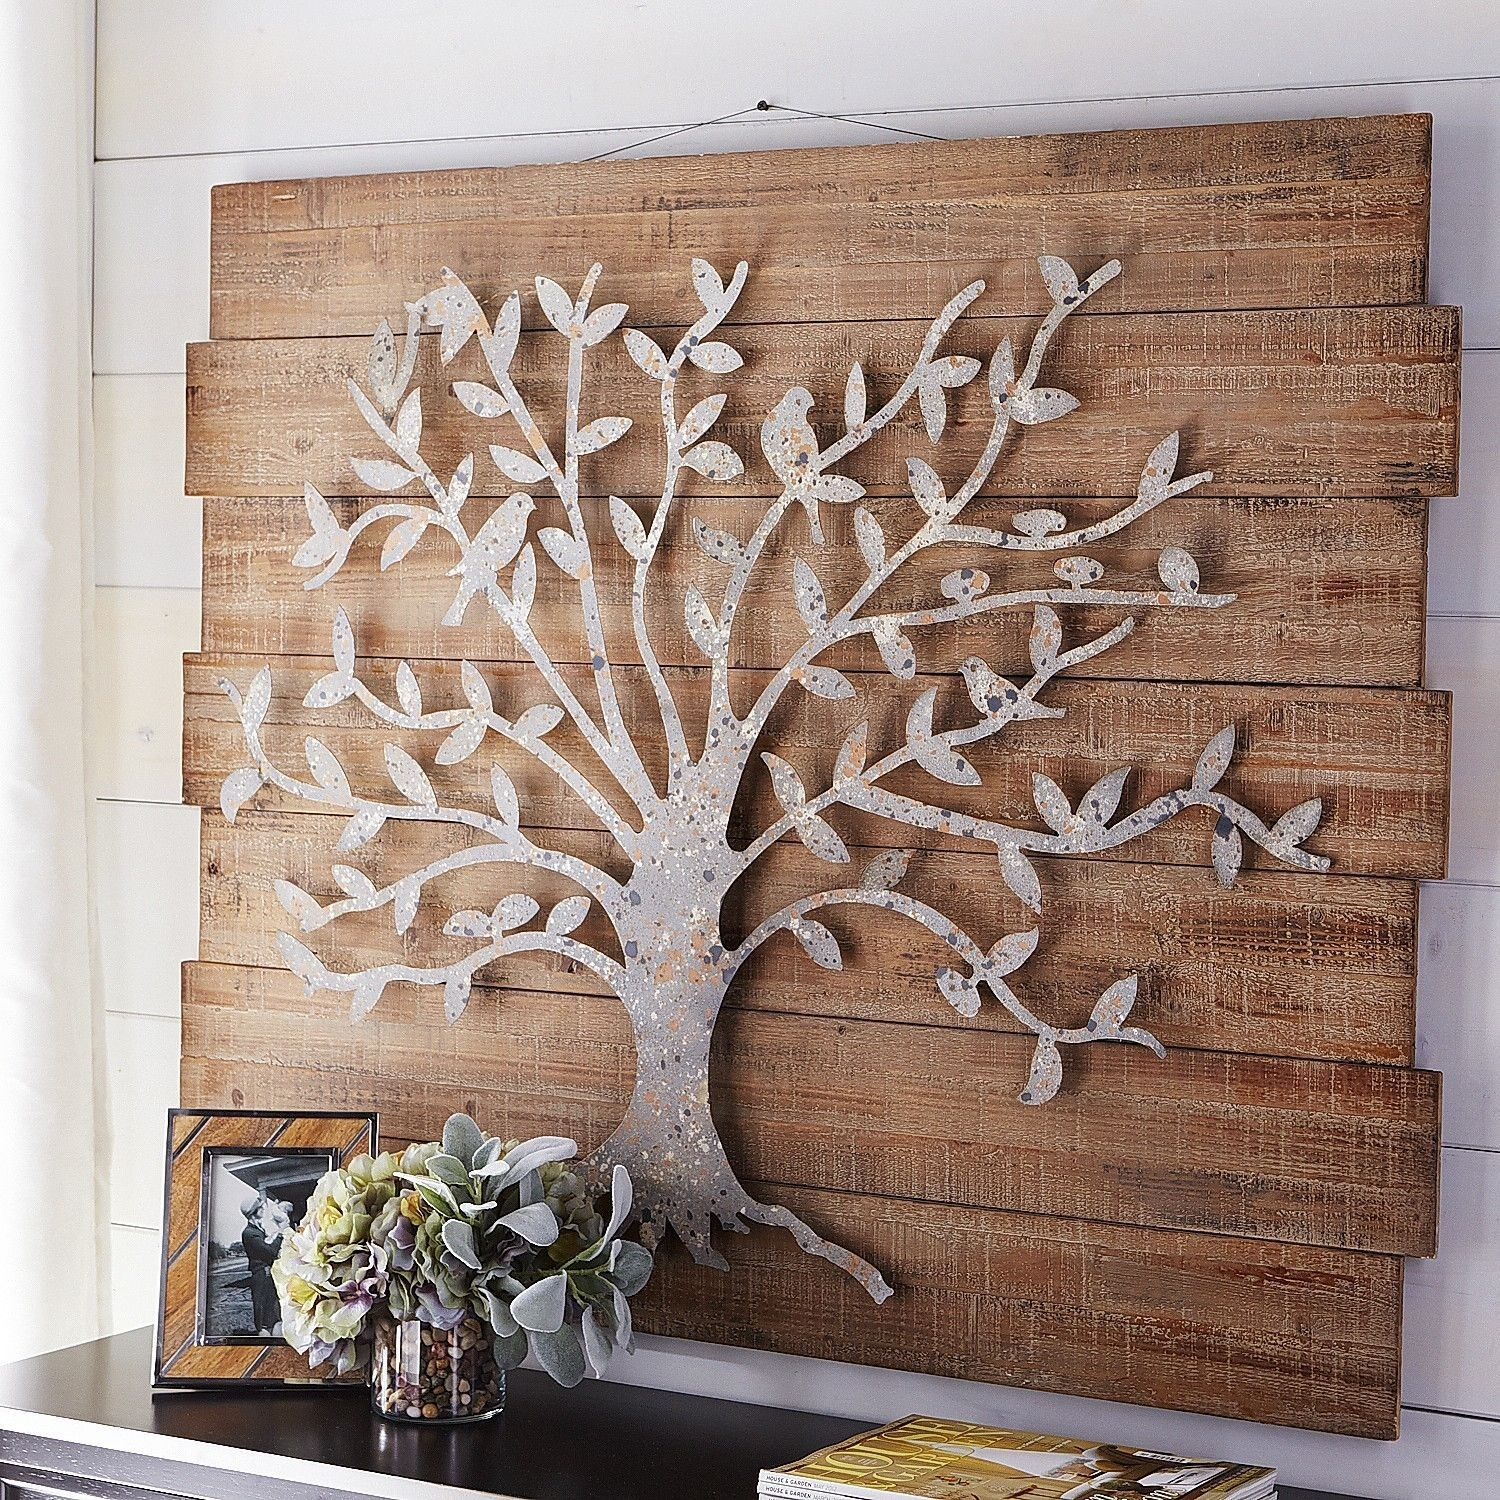 Timeless Tree Wall Decor | Pier 1 Imports … | Metal Work | Pinte… Regarding Newest Wall Art Metal (View 8 of 20)